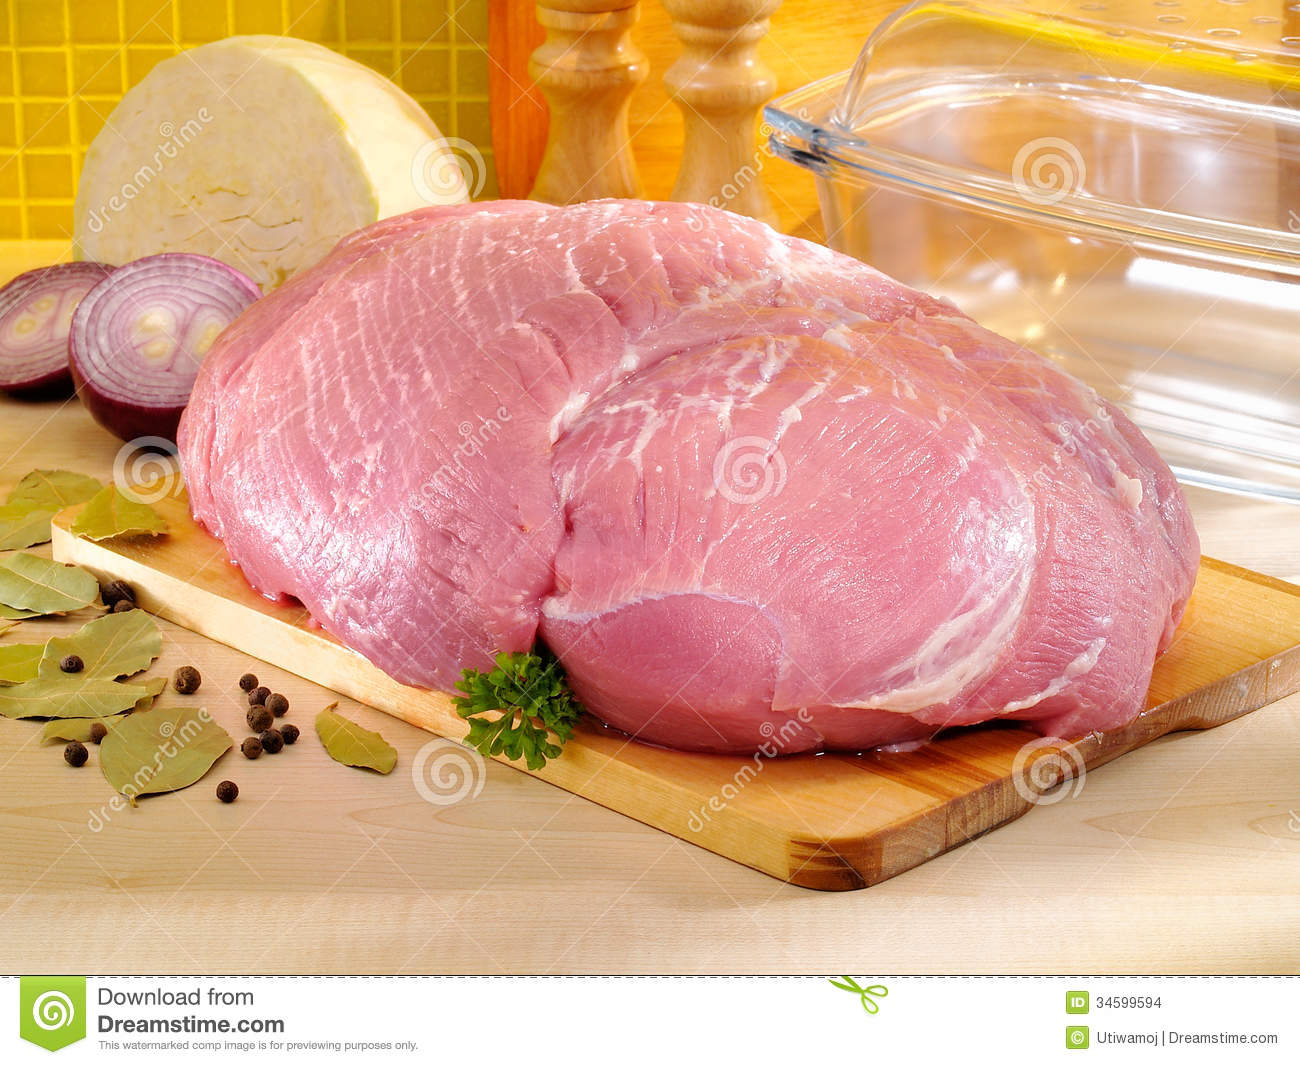 1000  images about Meat the Family on Pinterest | Pork, Smoked ham ...